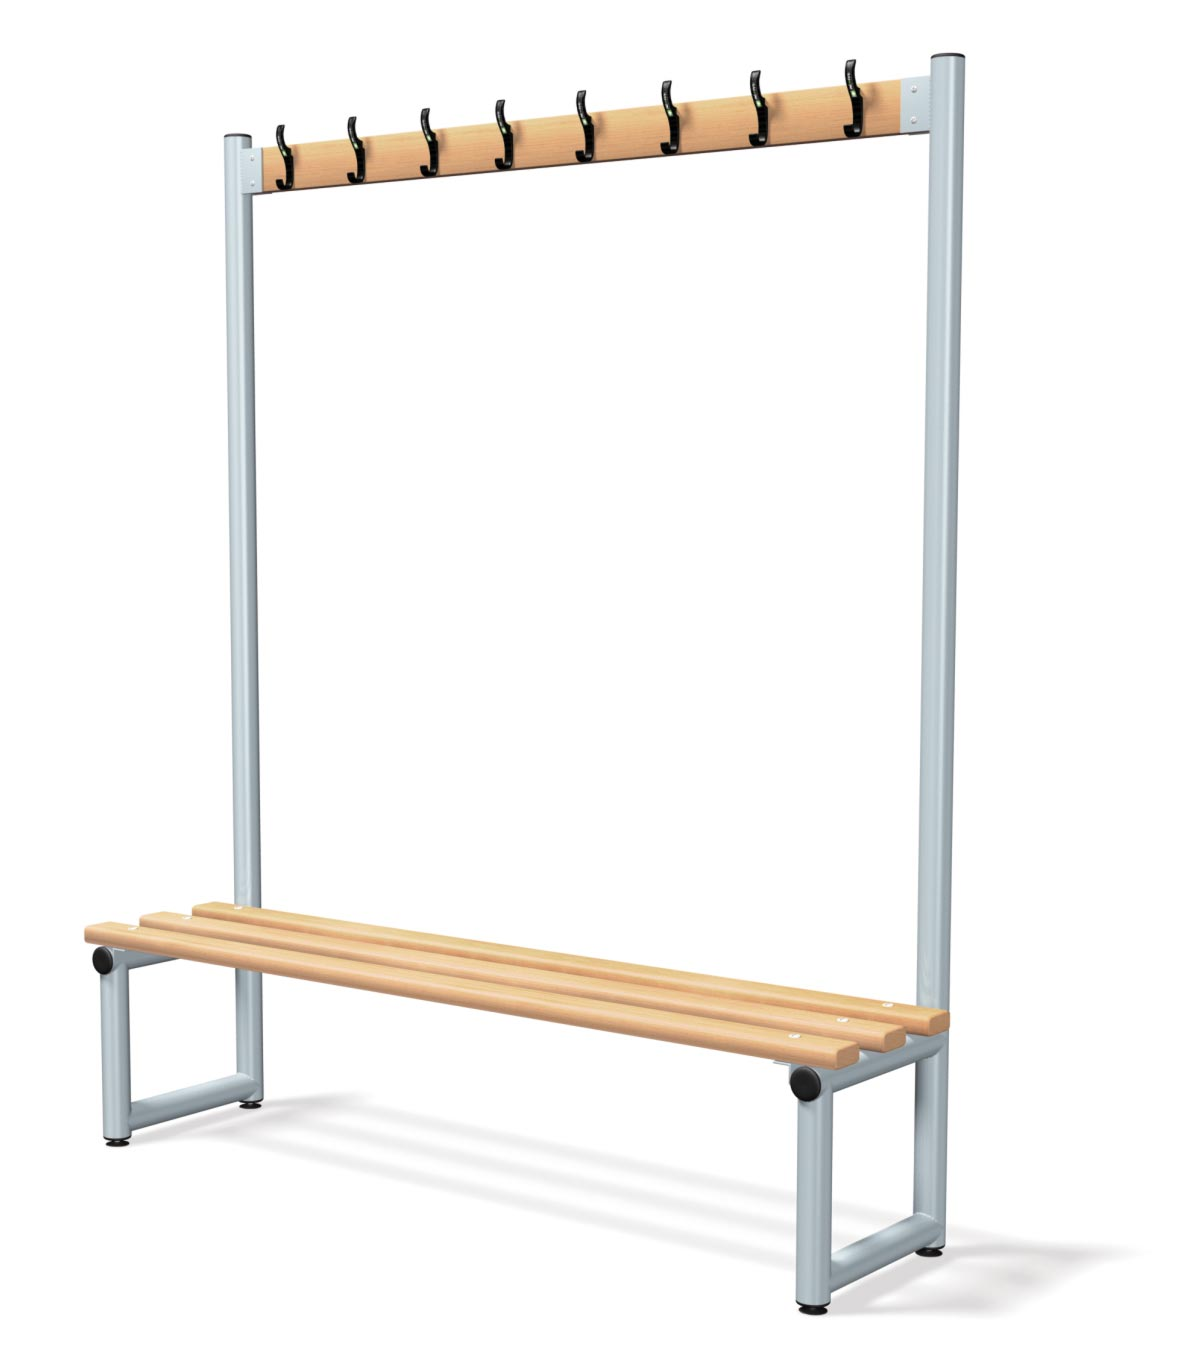 Single Sided Bench Integrated Hook Board - Type D Junior